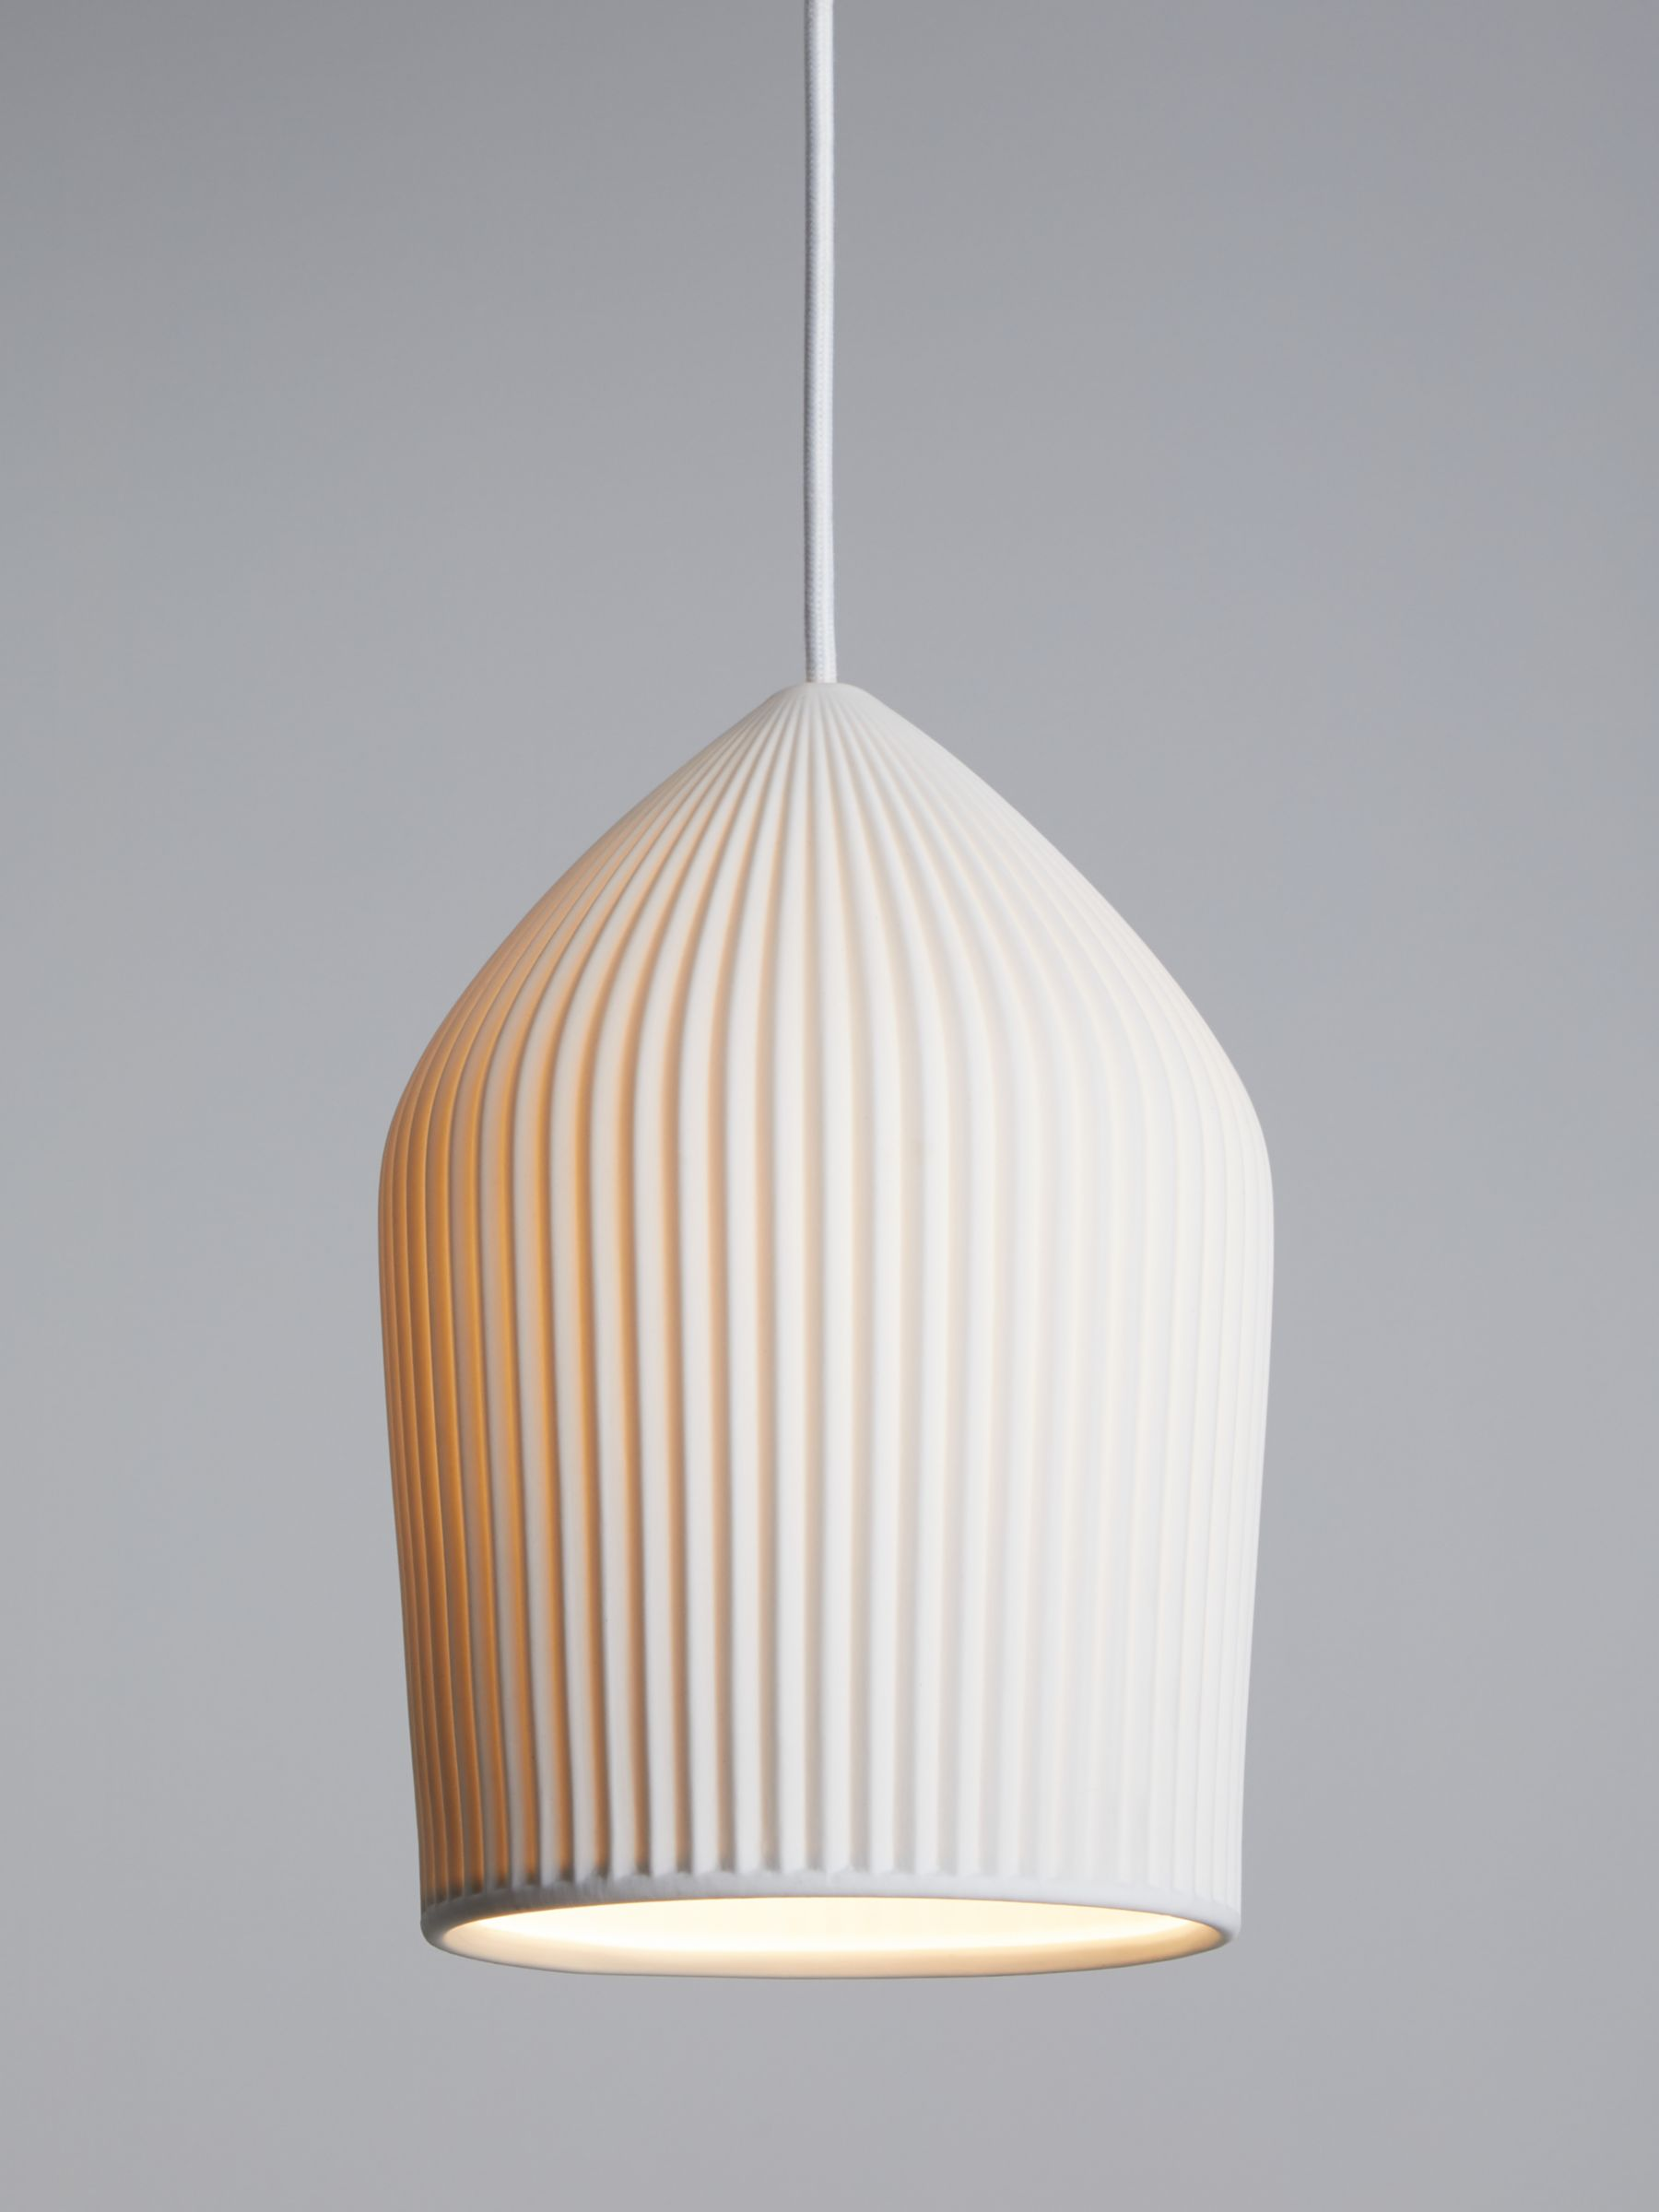 Nordlux Nordlux Design For The People Reykjavik Ceiling Light, White